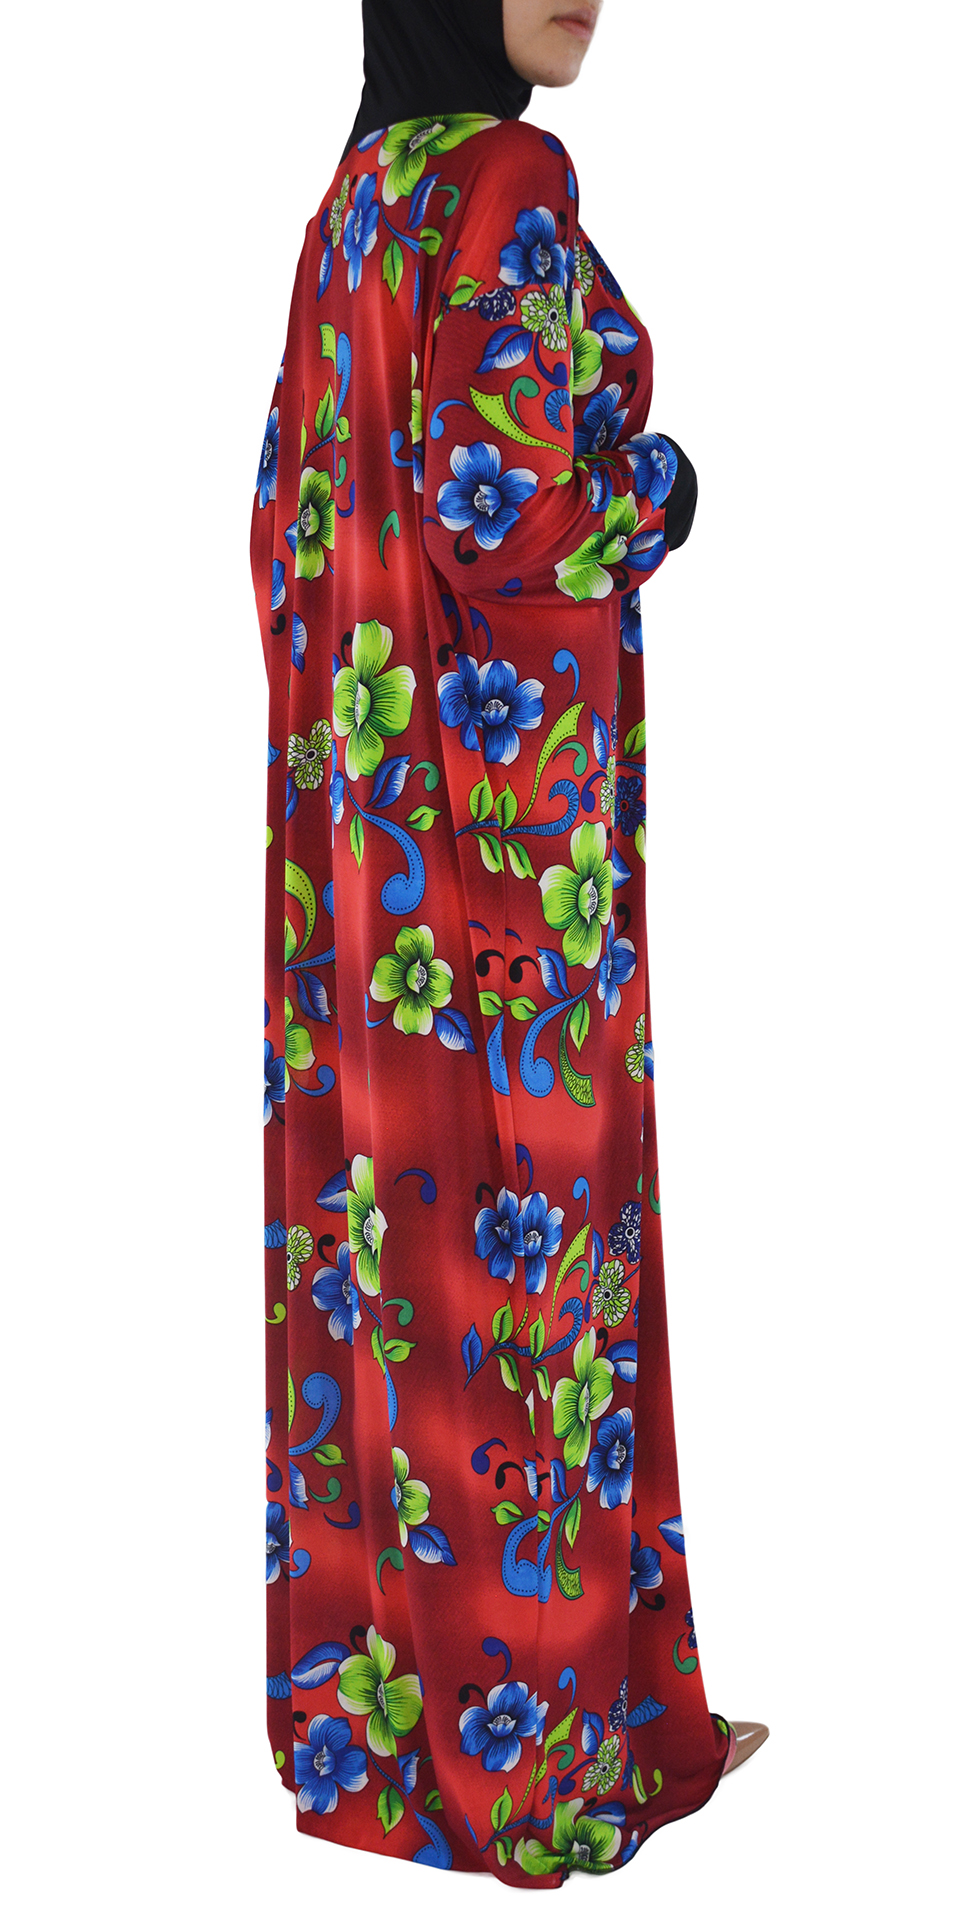 Floral Clovers Red and Green/Blue Print 3